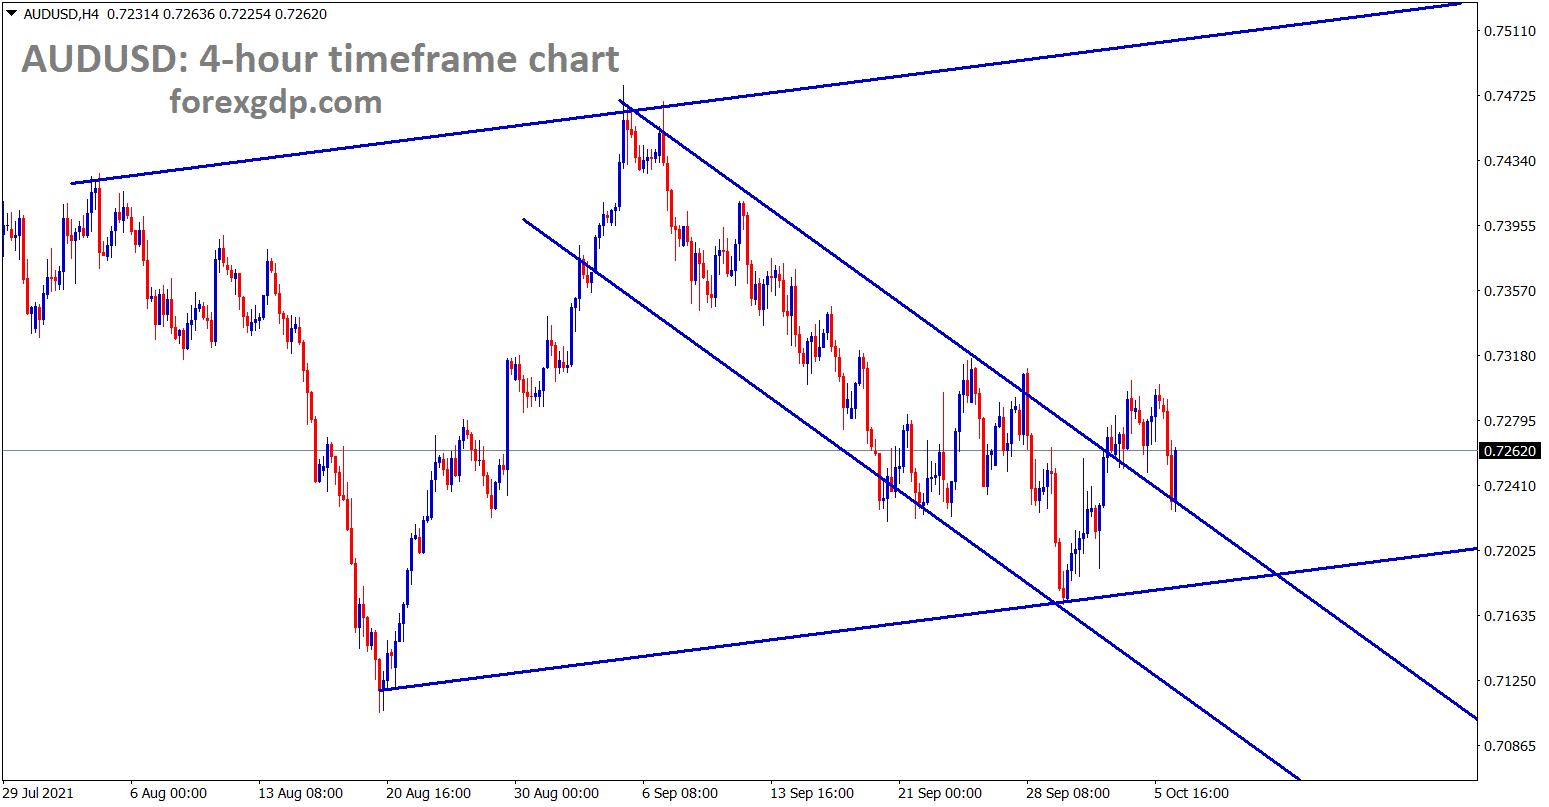 AUDUSD has retested the broken descending channel and surging now